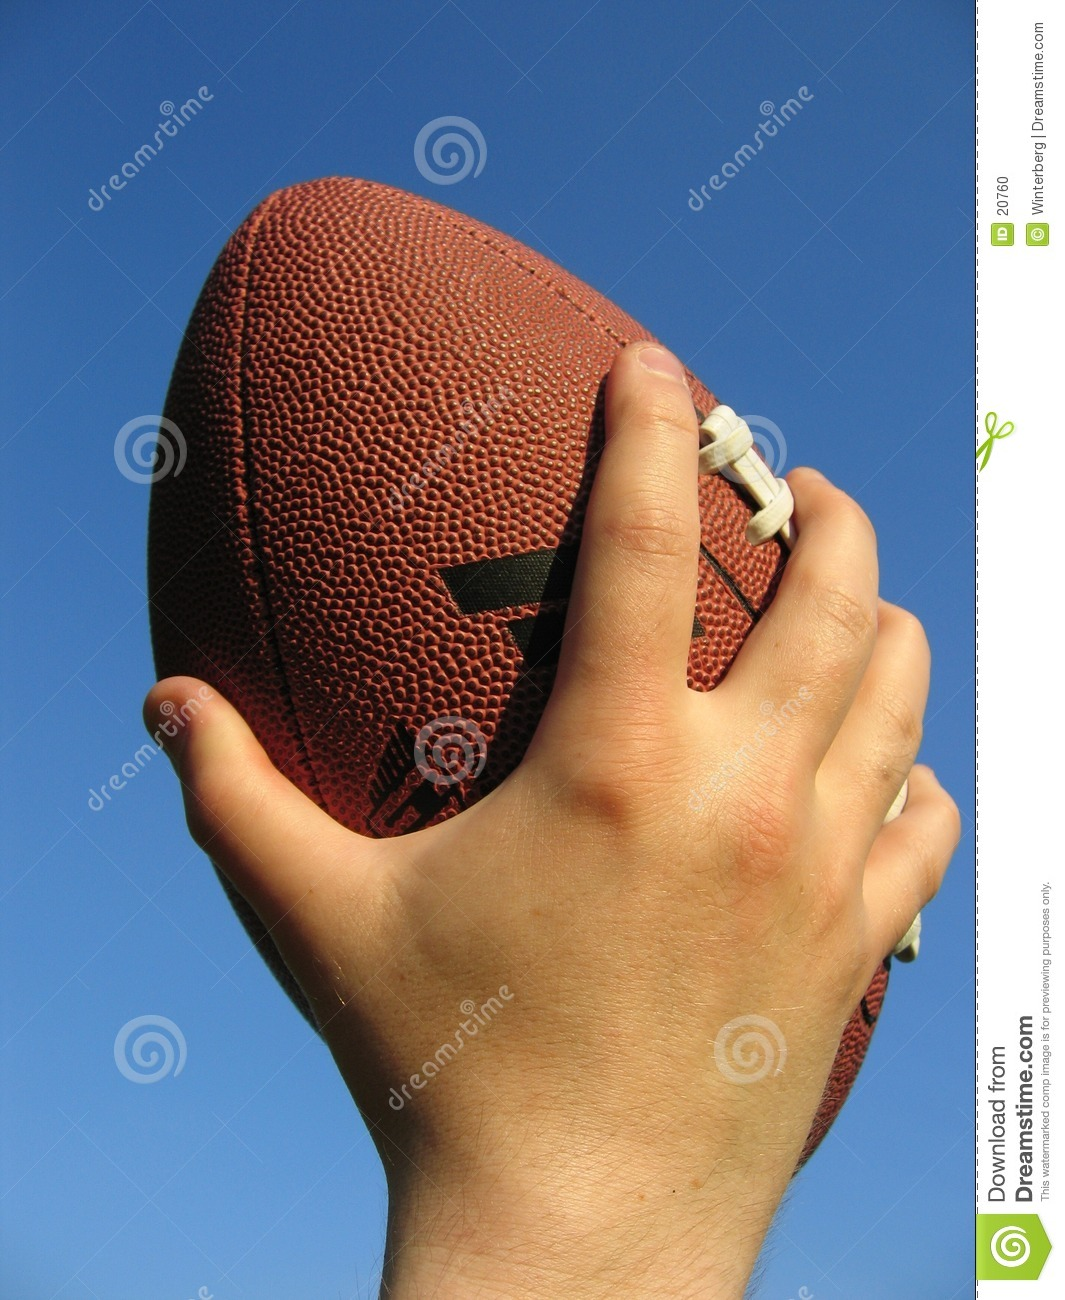 Football in Hand